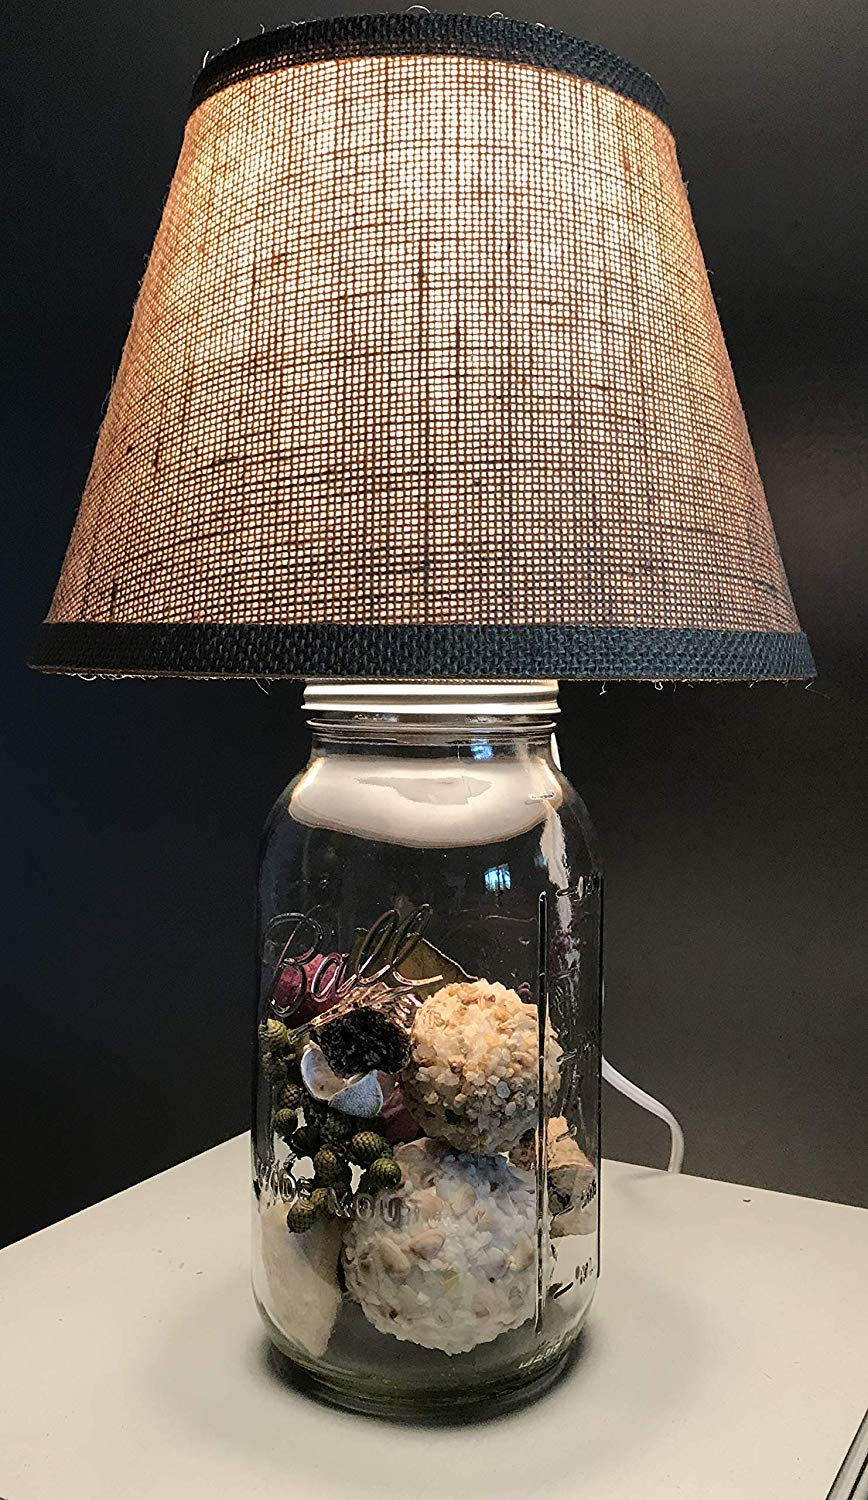 mason jar lamp distressed table rustic accent lamps creative farmhouse burlap glass base ready fill christmas gift diy round dining west elm night tables western floor bedroom